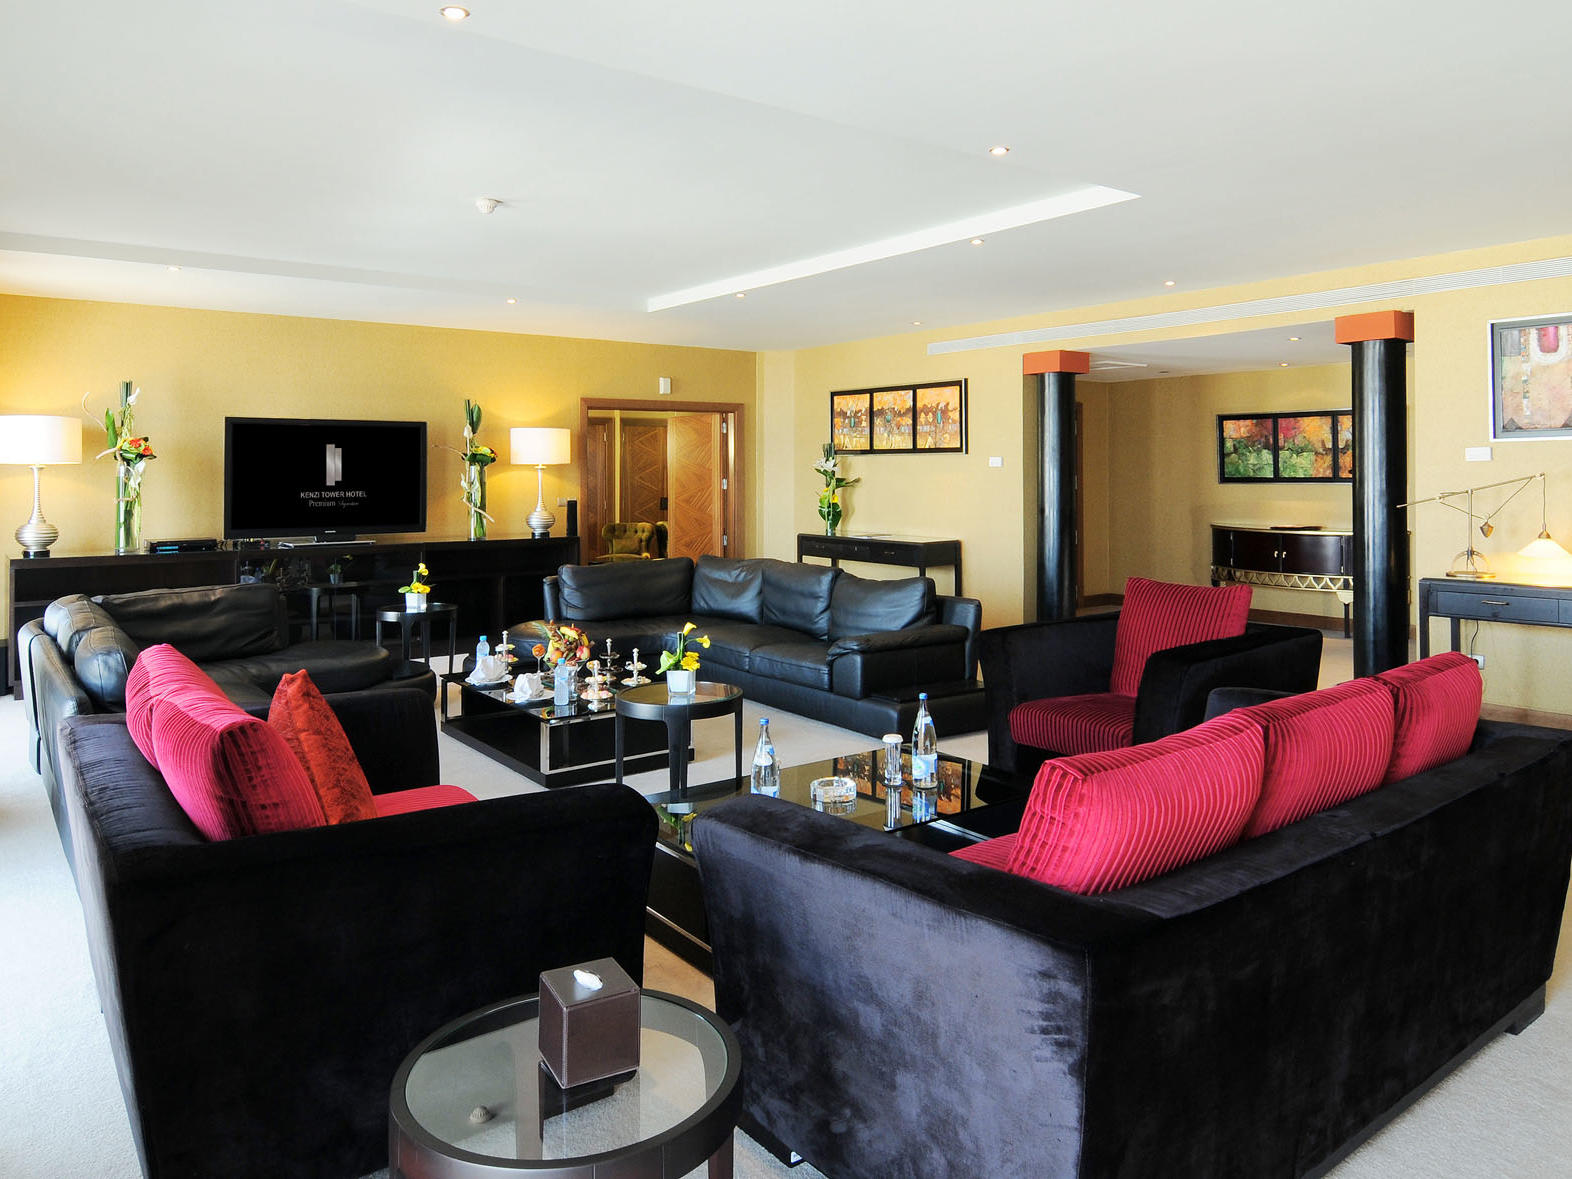 Royal Suite at Kenzi Tower Hotel in Casablanca, Morocco